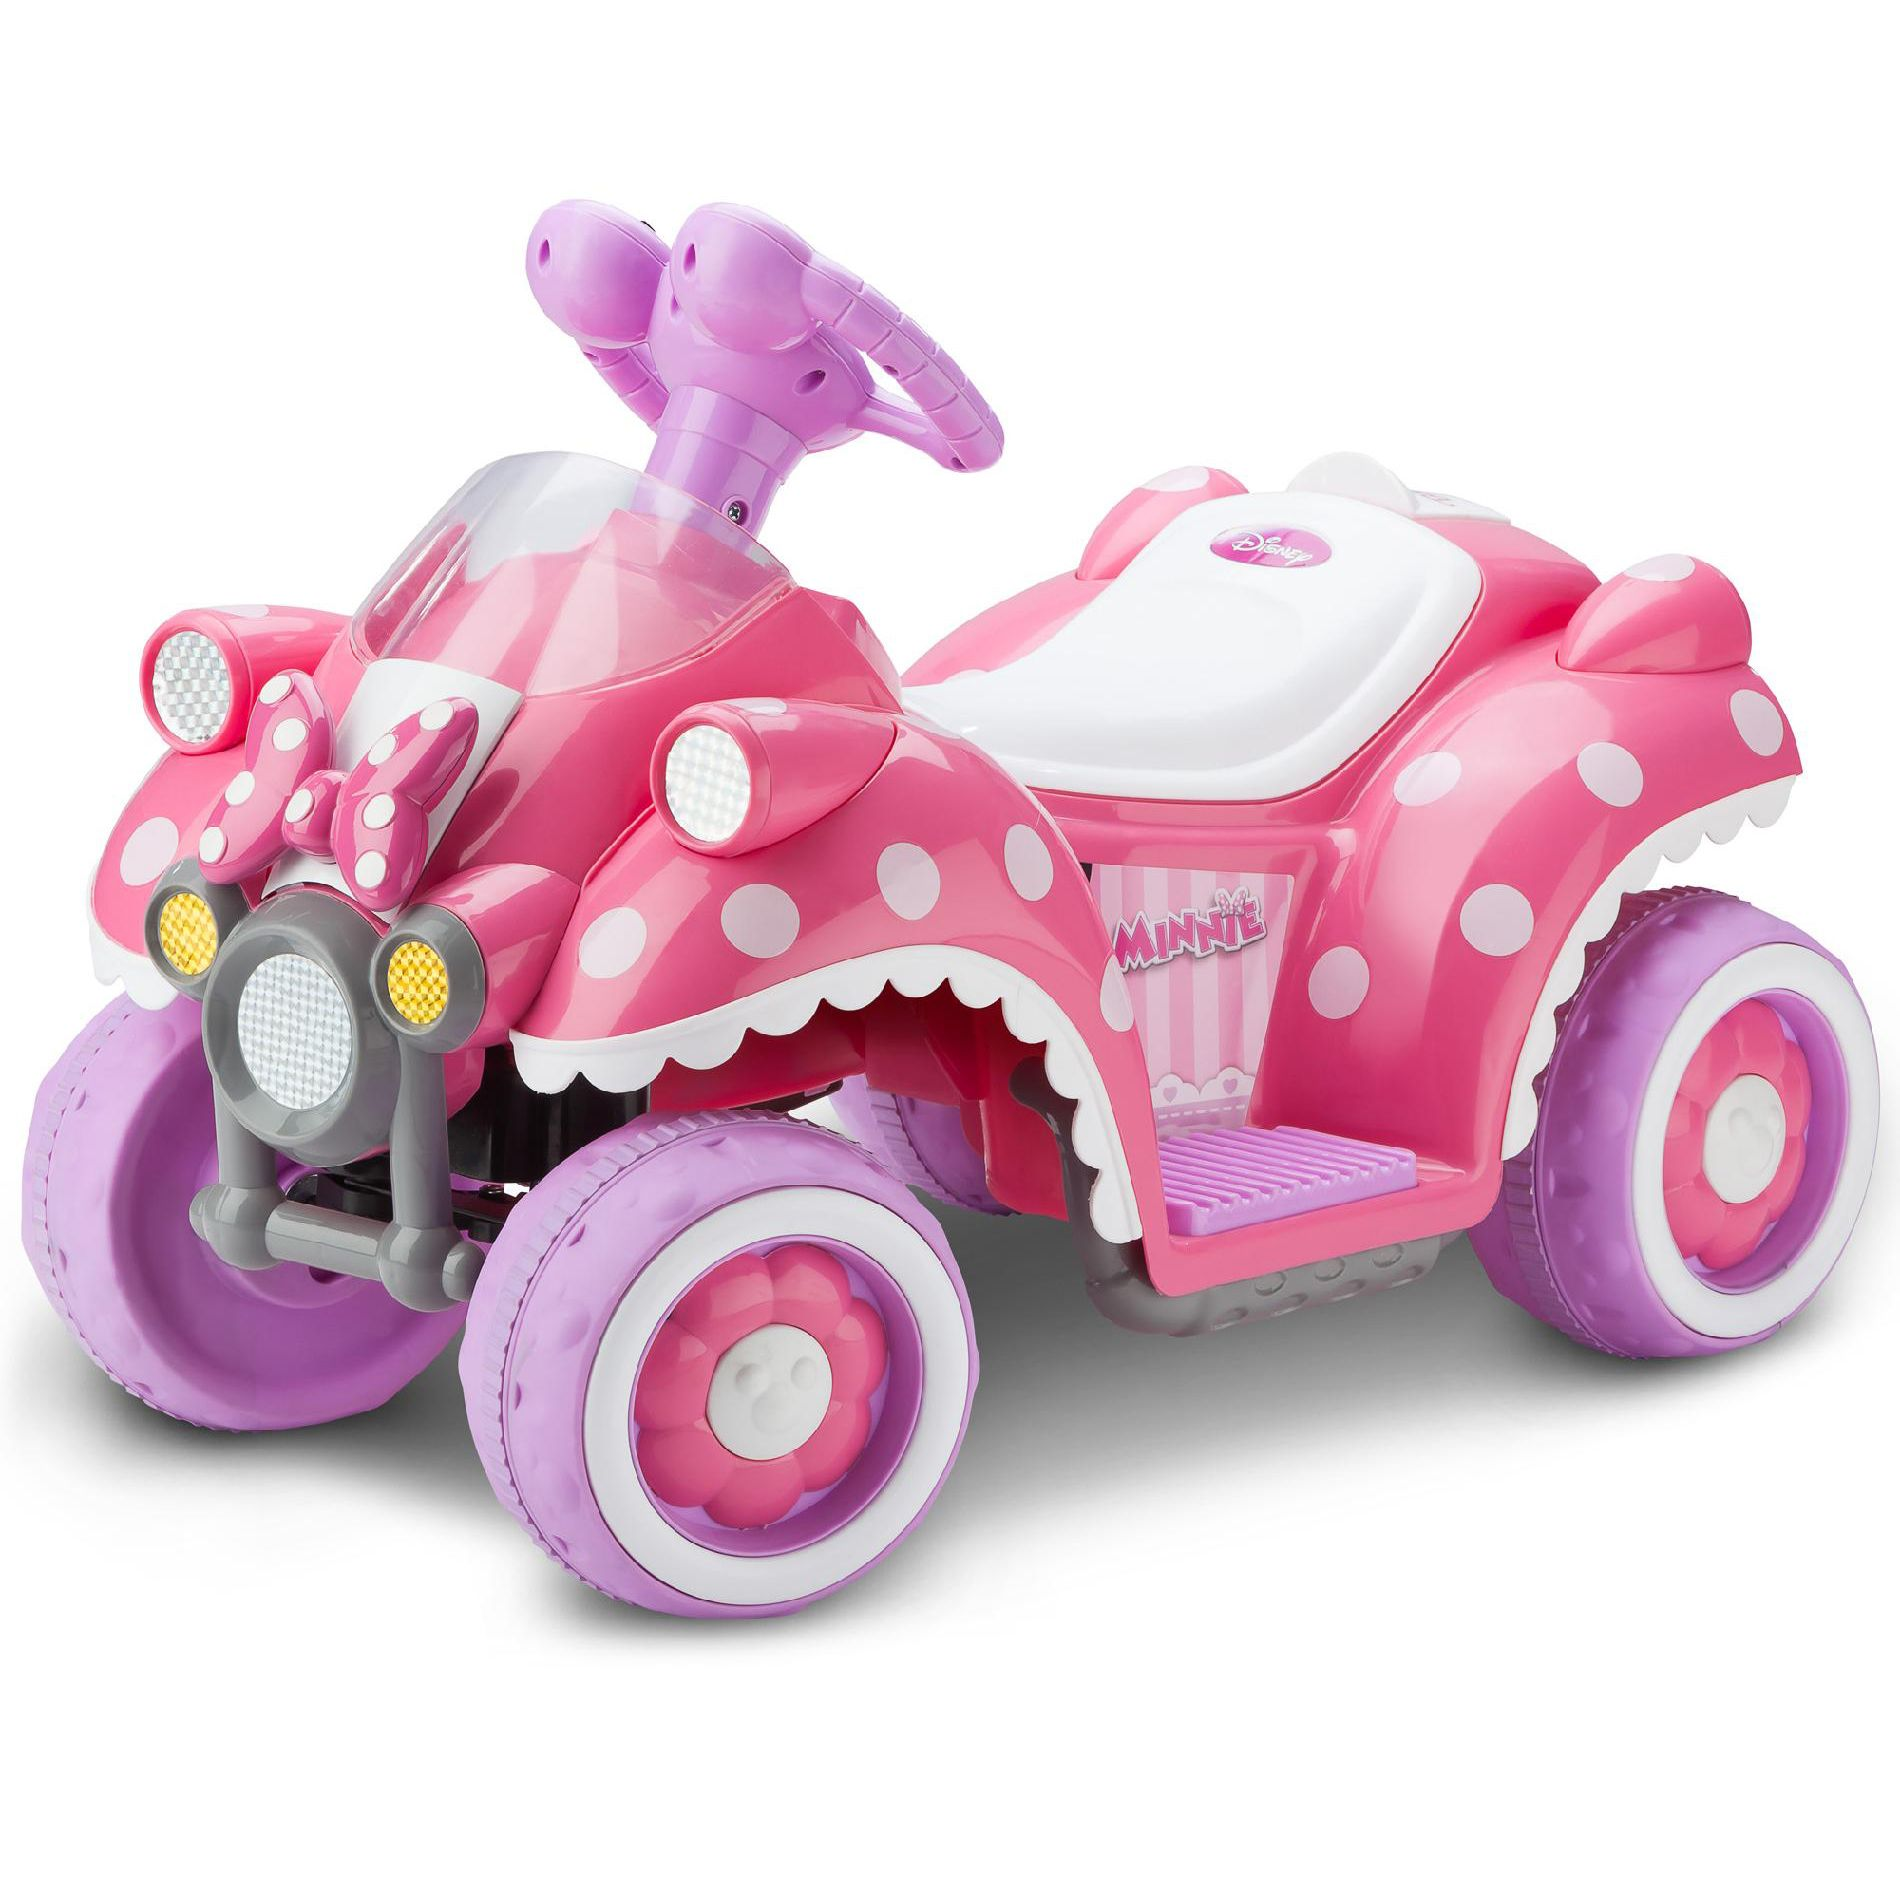 Pin by Henrietta Anyanwu on kids toys Minnie mouse toys